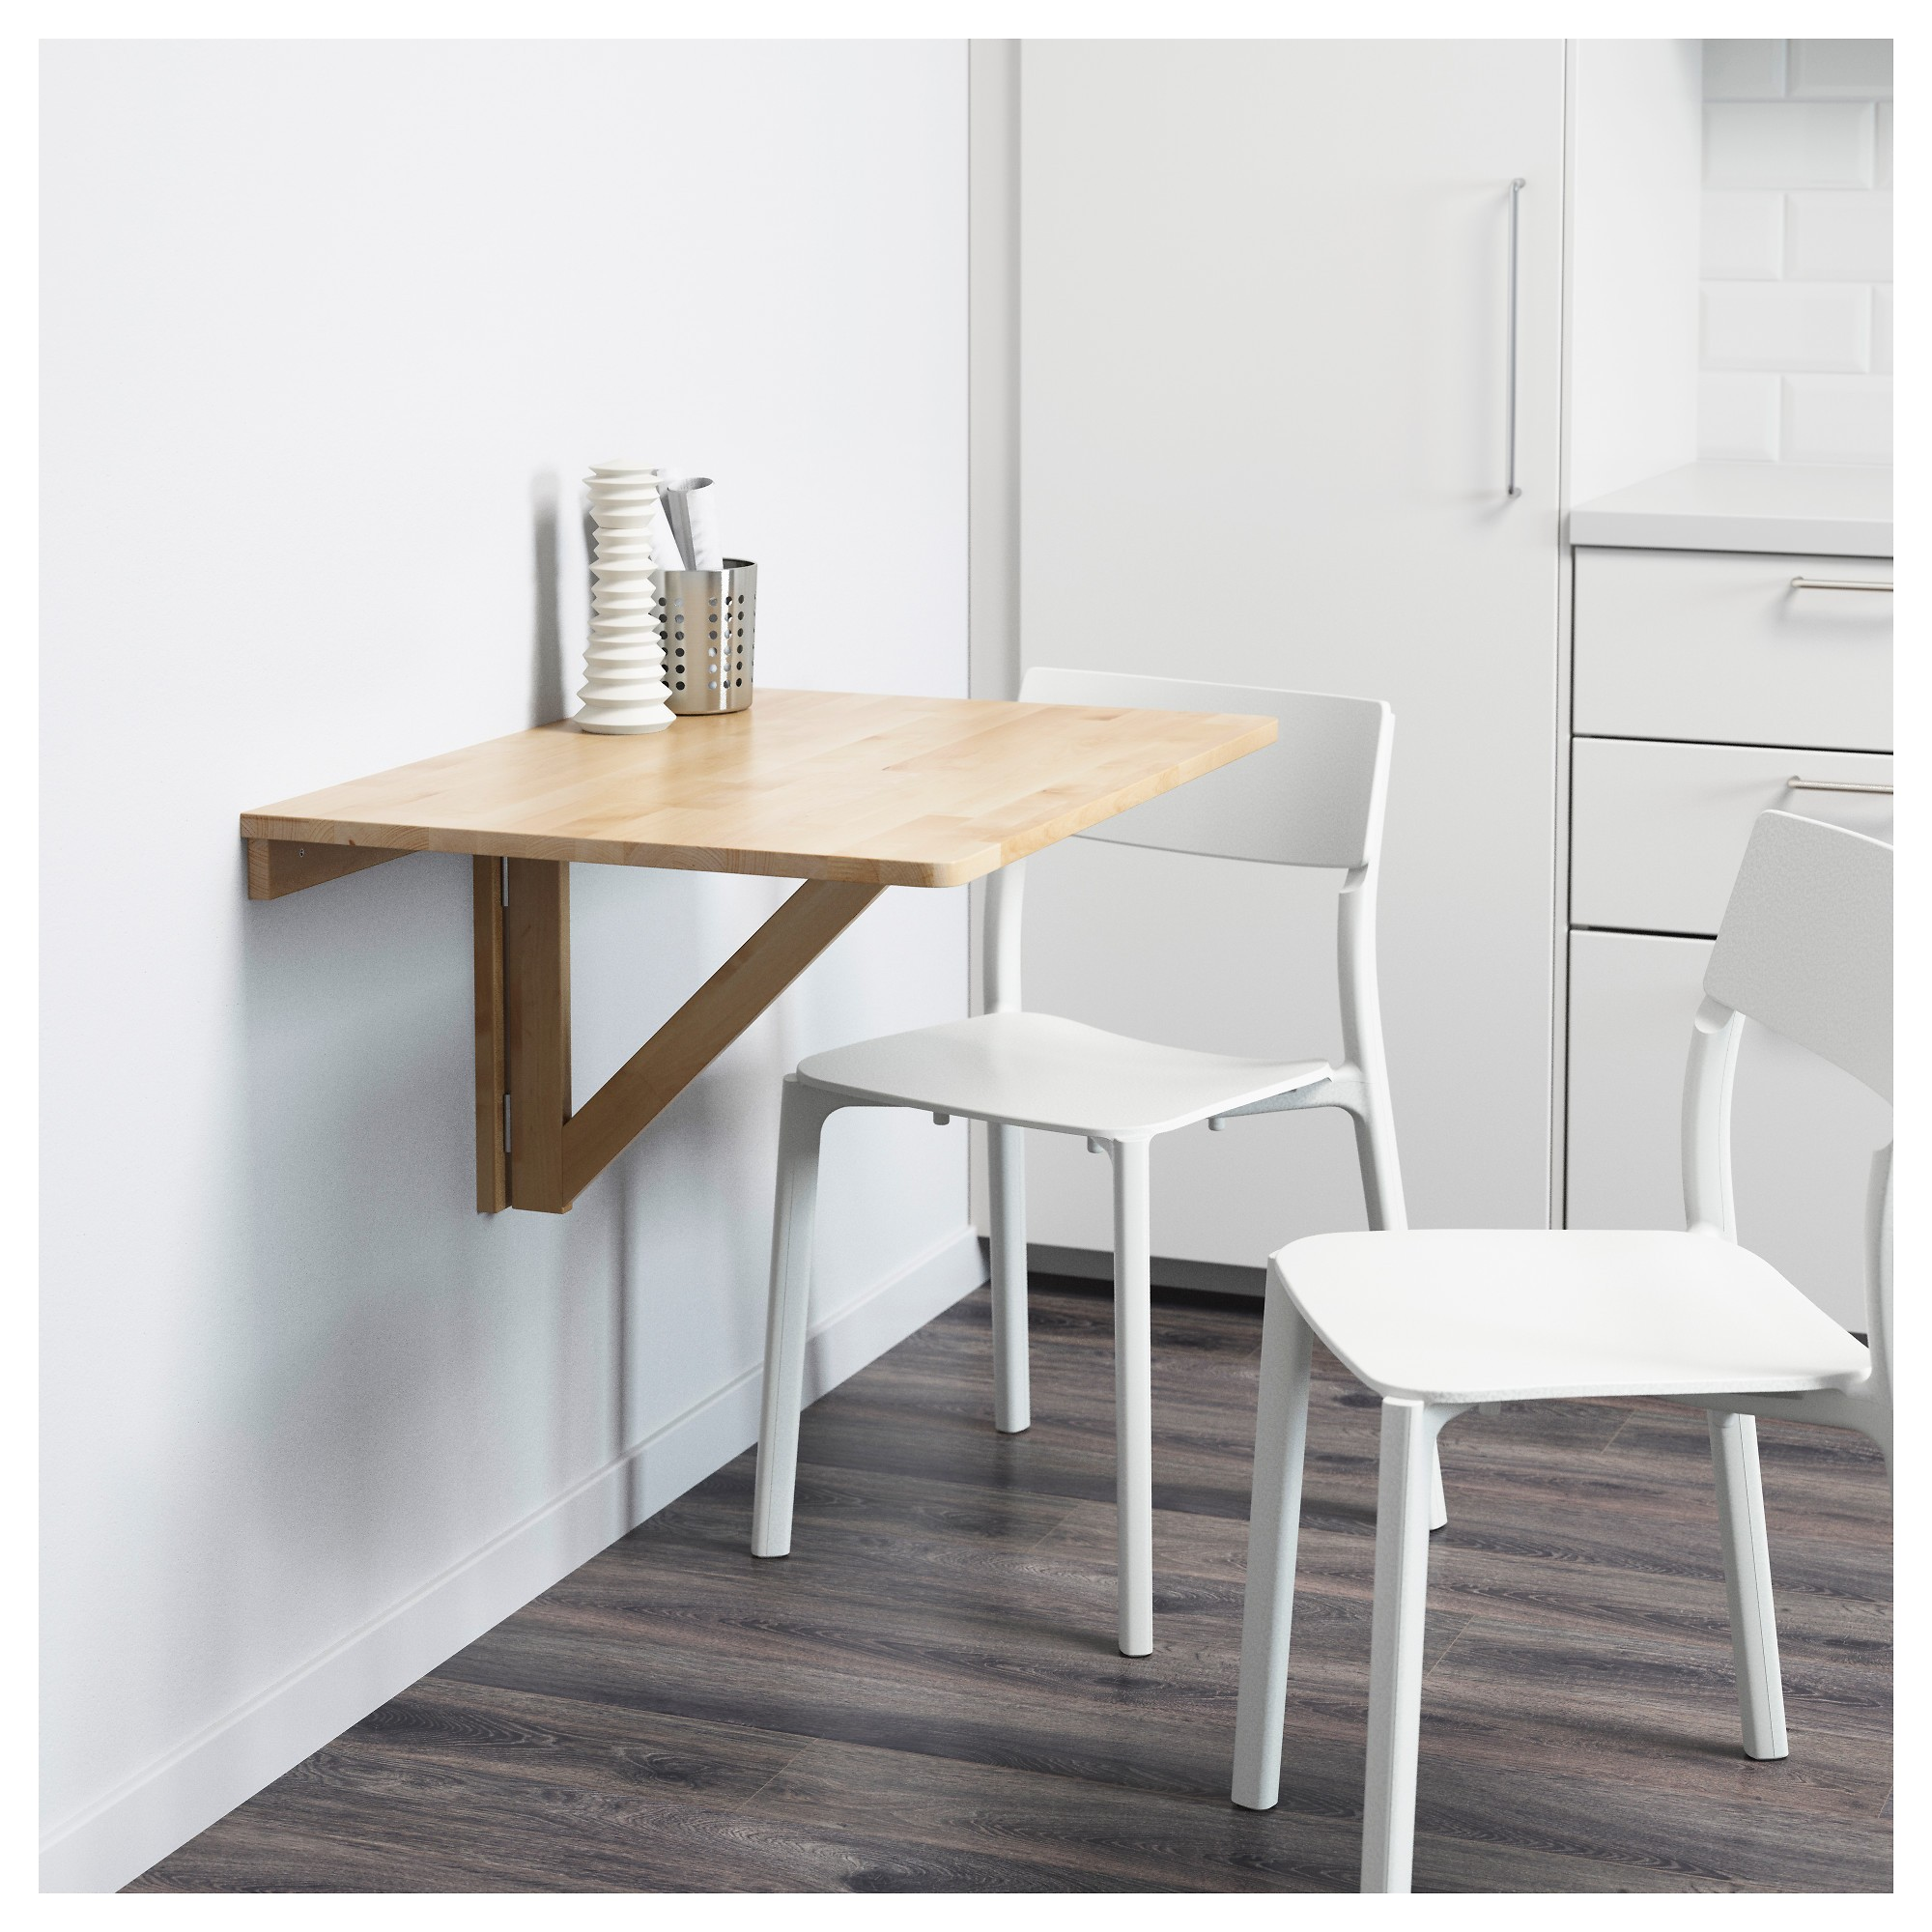 Table cuisine pliante murale ikea cuisine id es de for Table pliante cuisine murale